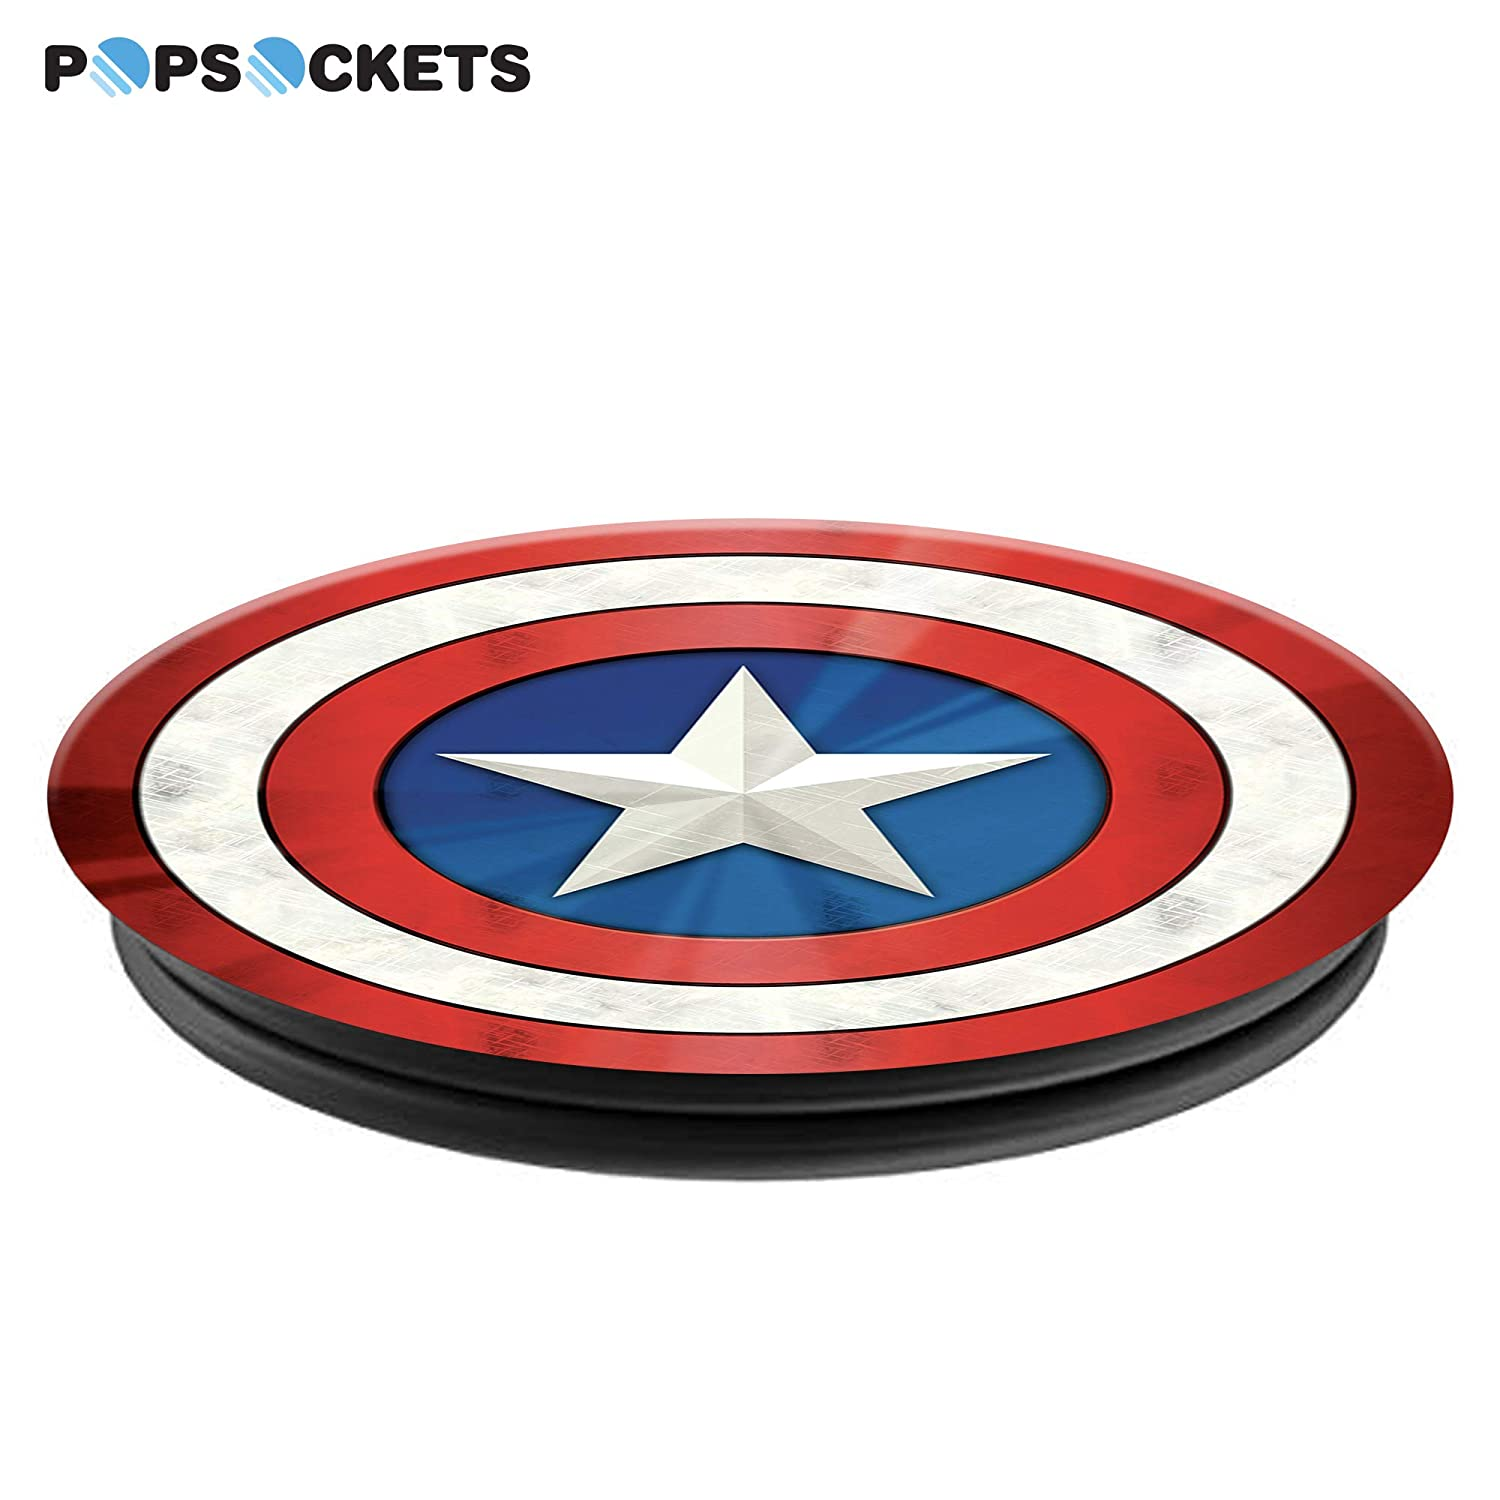 Captain America Shield Icon PopSockets Collapsible Grip /& Stand for Phones and Tablets